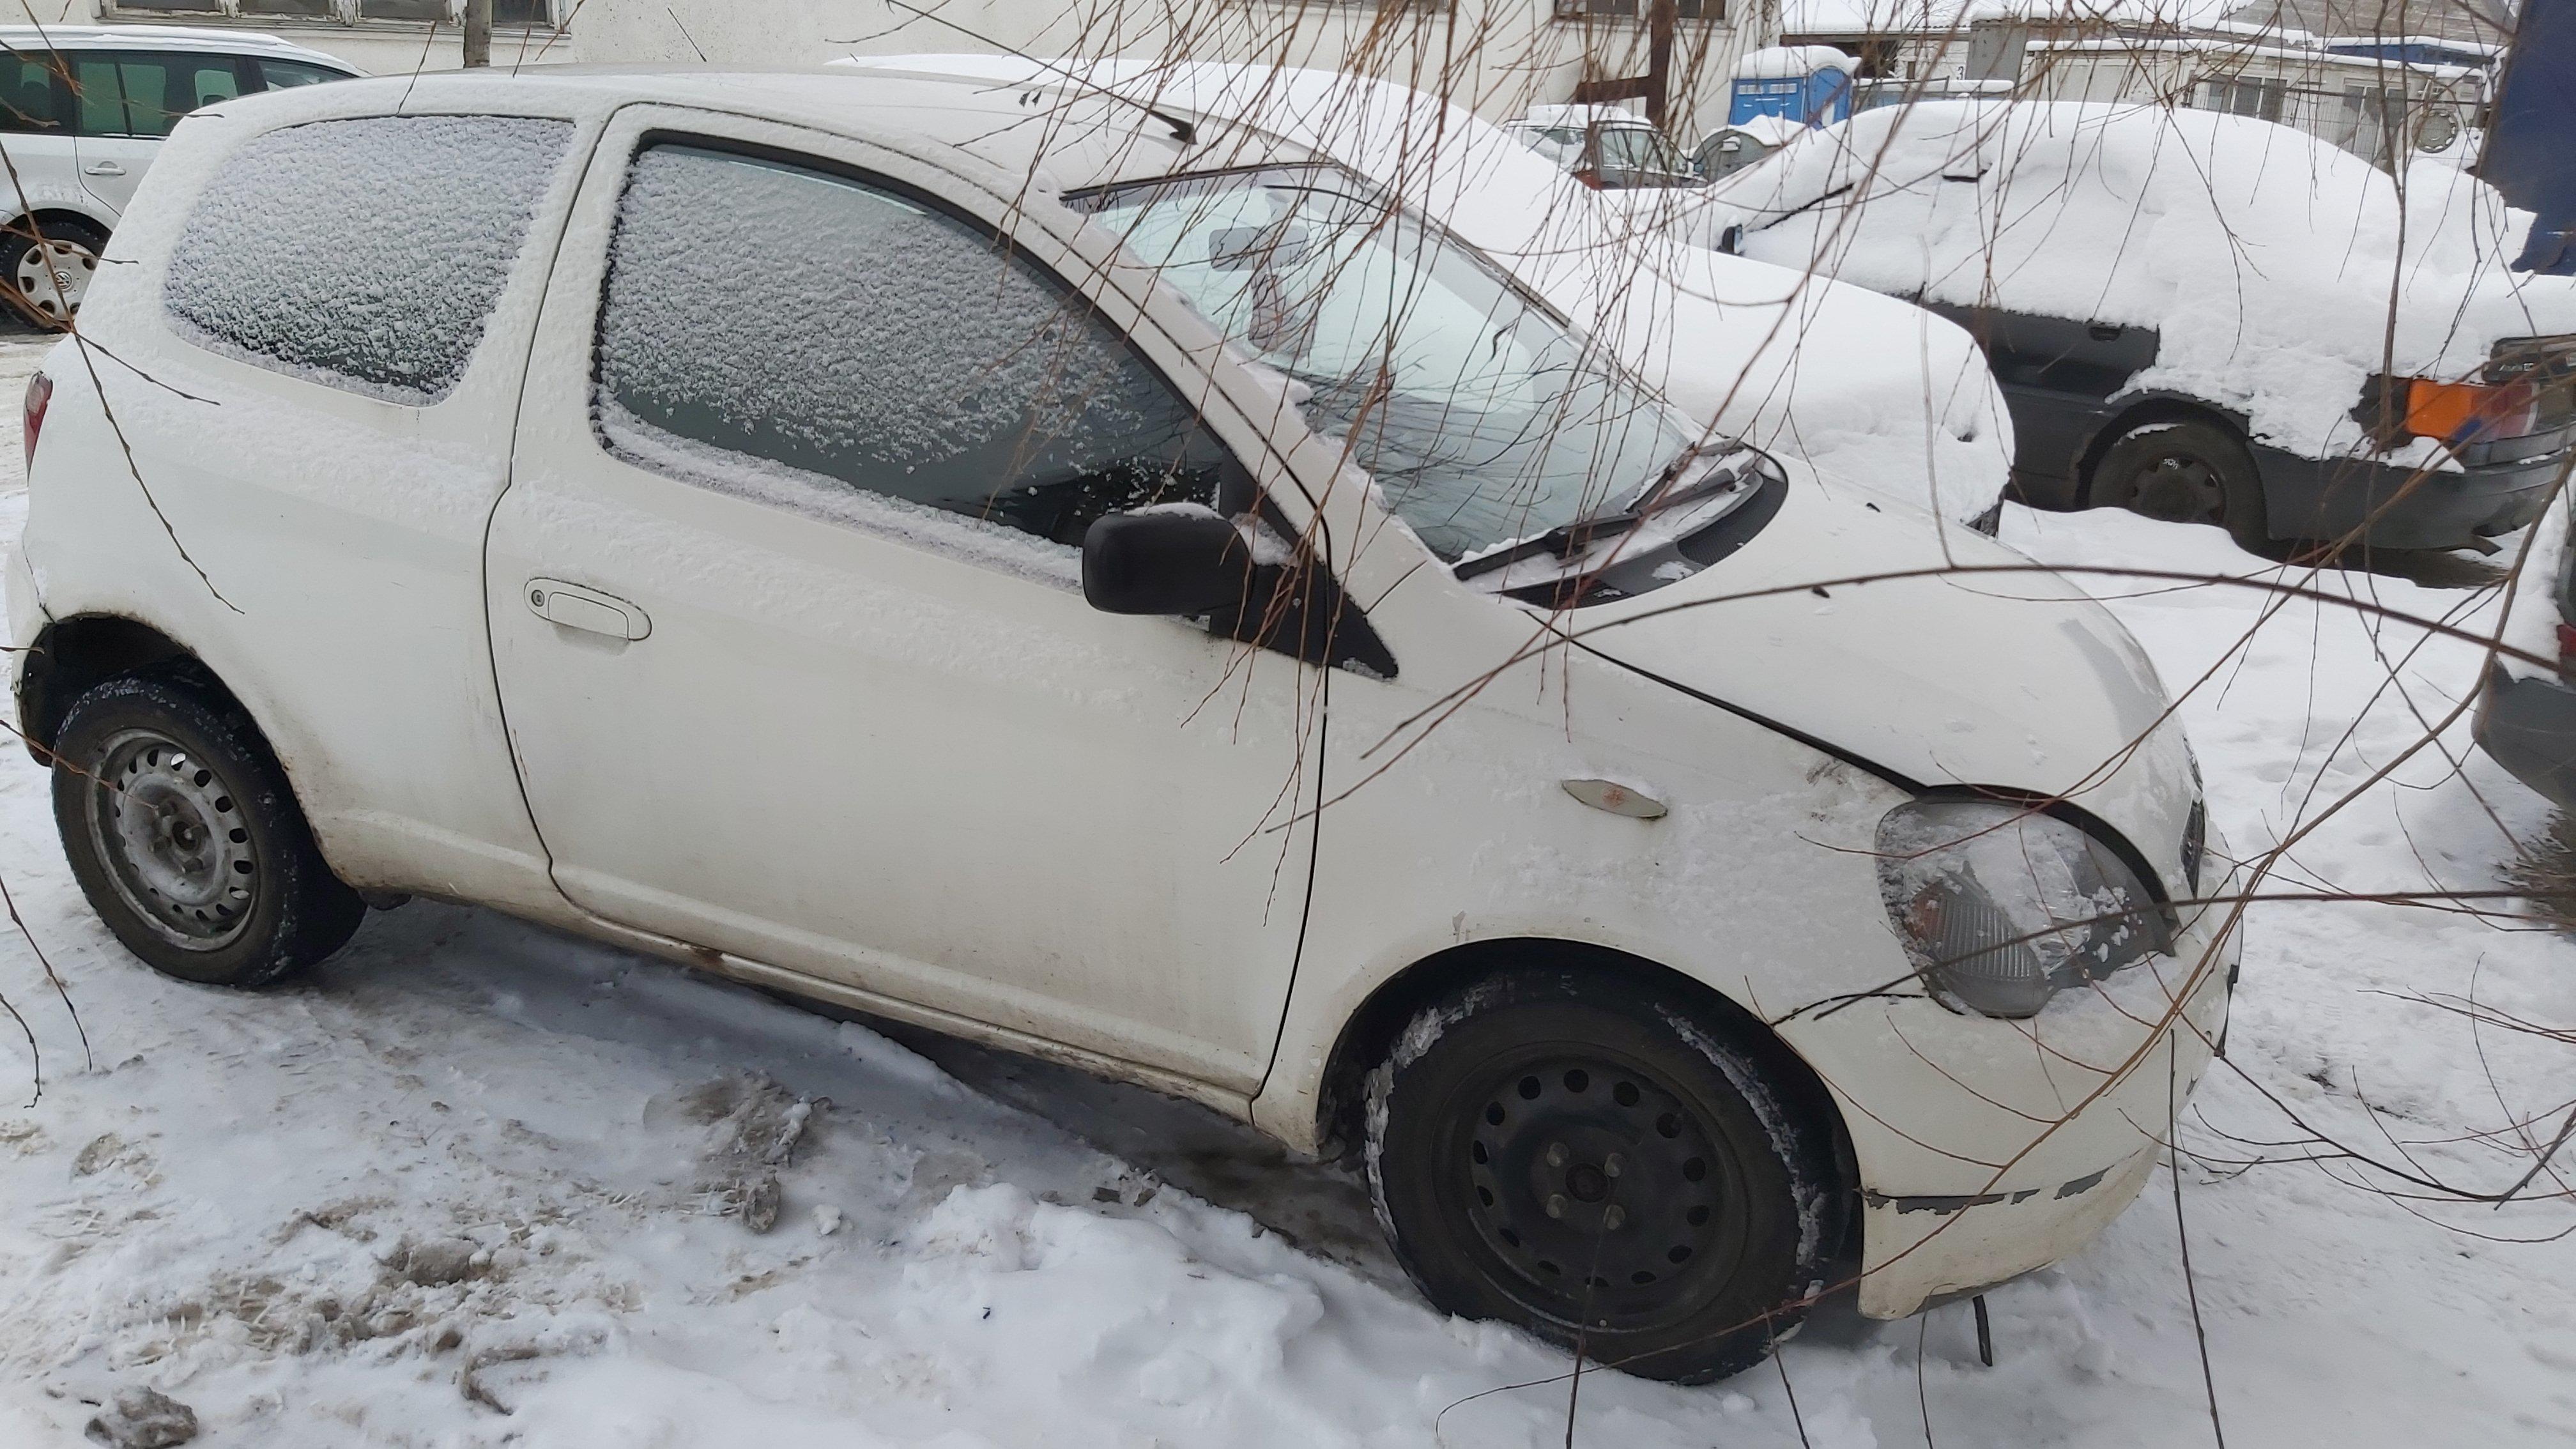 Used Car Parts Toyota YARIS 2002 1.0 Mechanical Hatchback 2/3 d. white 2021-1-12